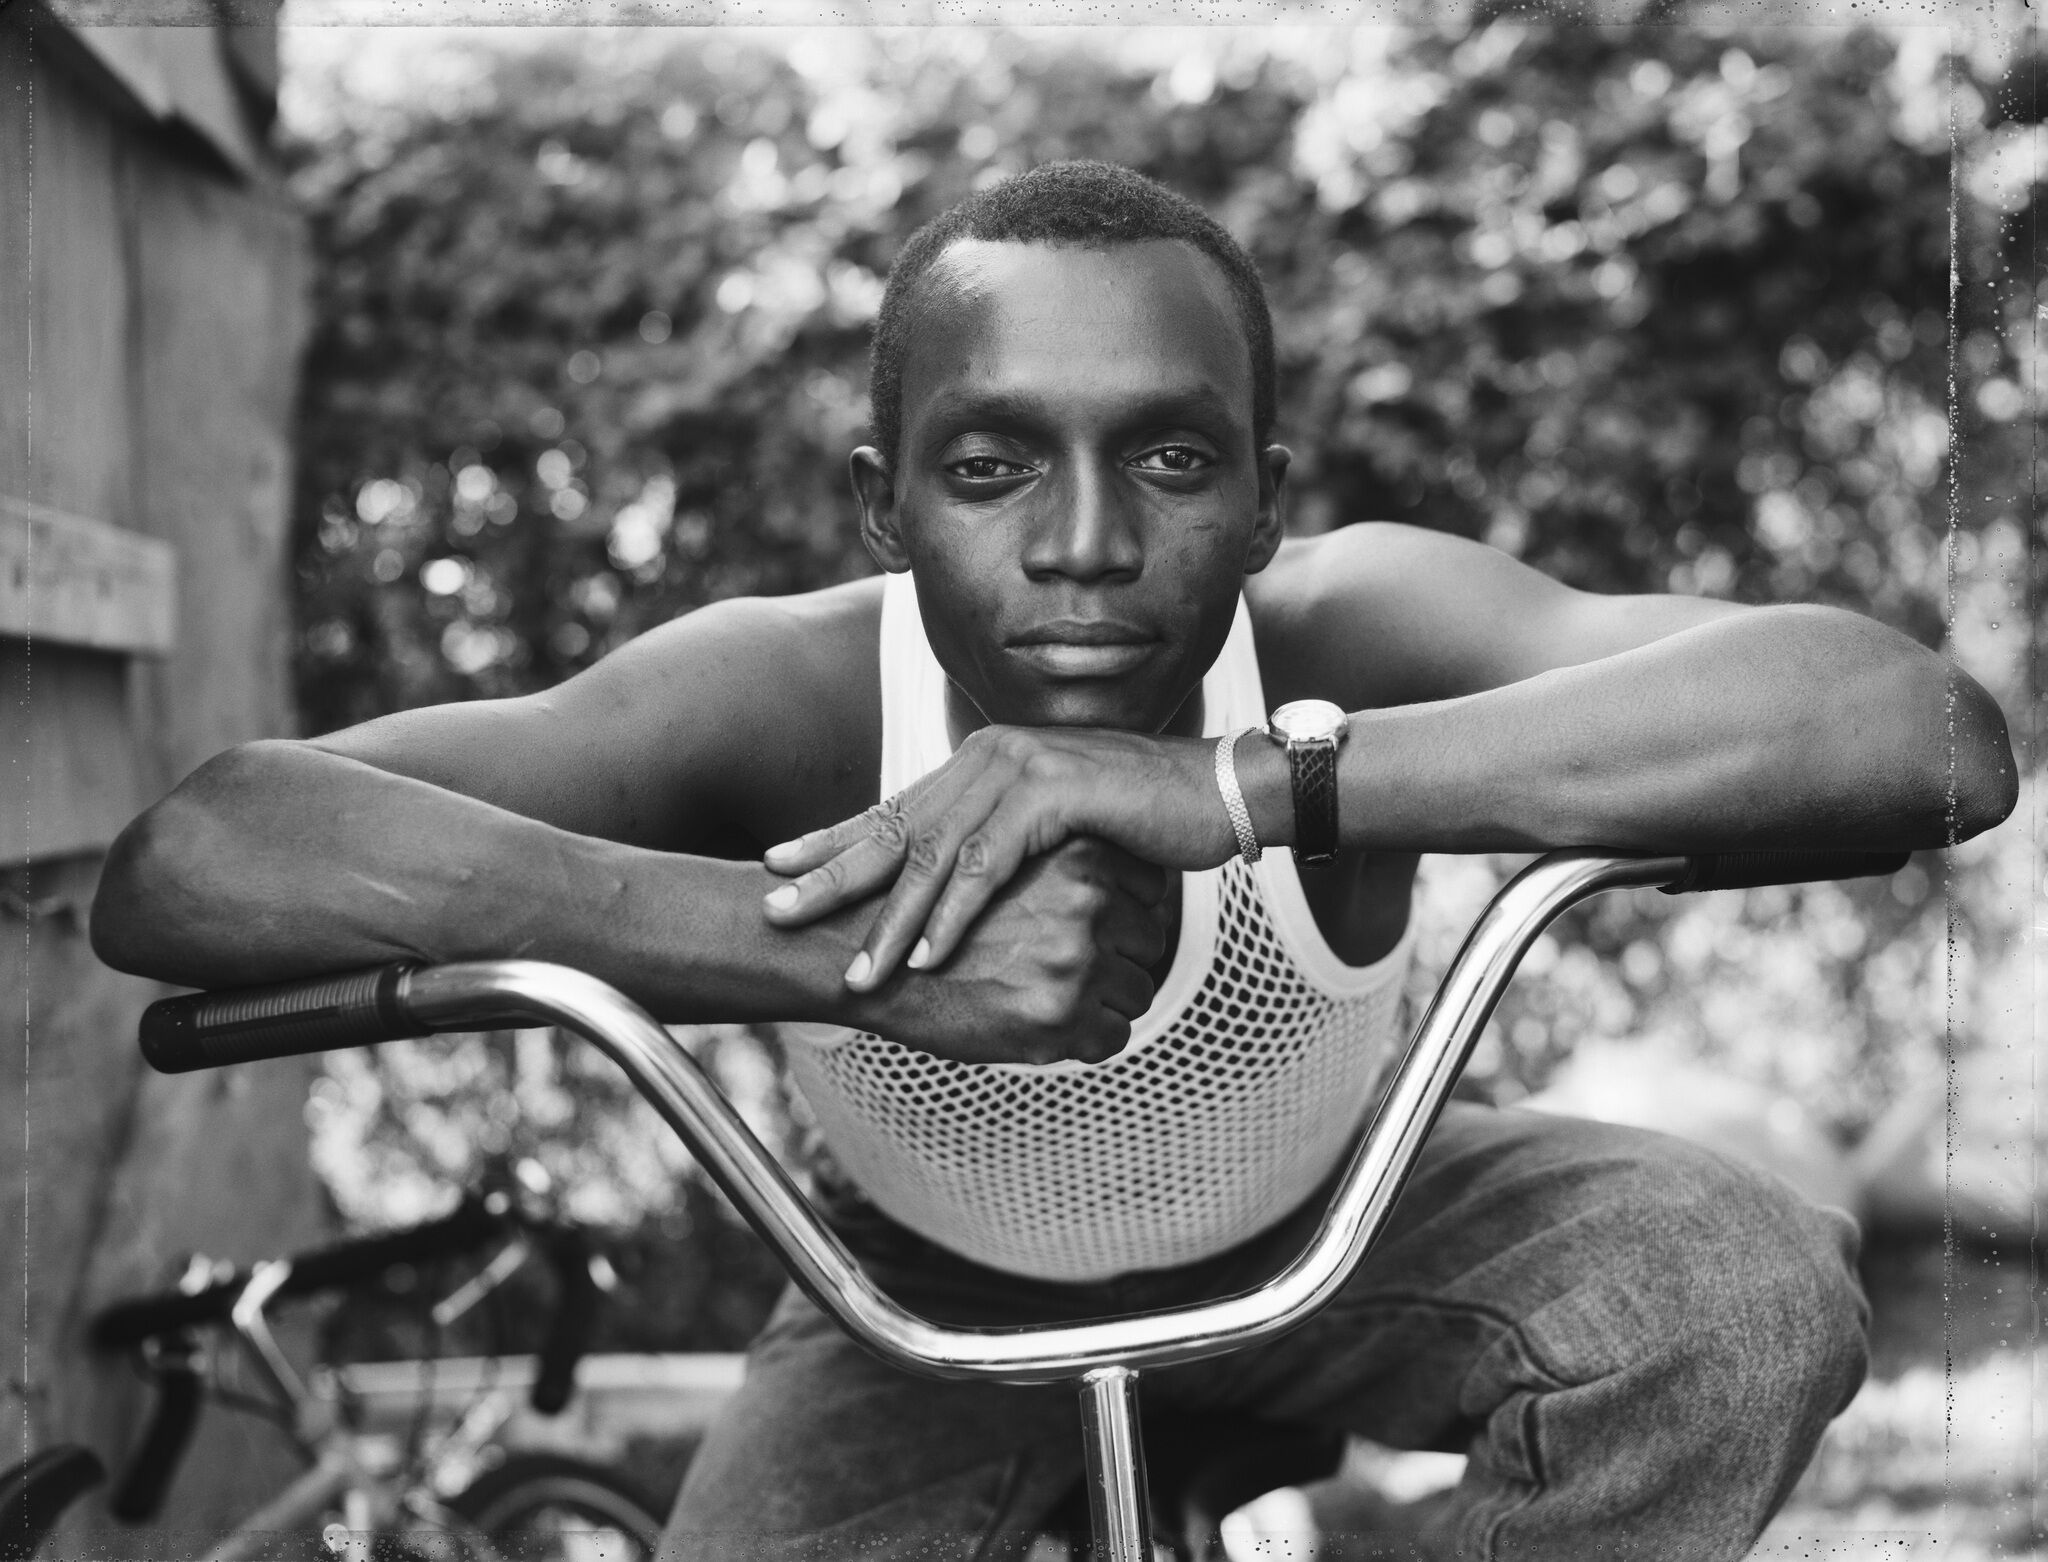 A young man is sitting on a bike and resting his arms on the handles.